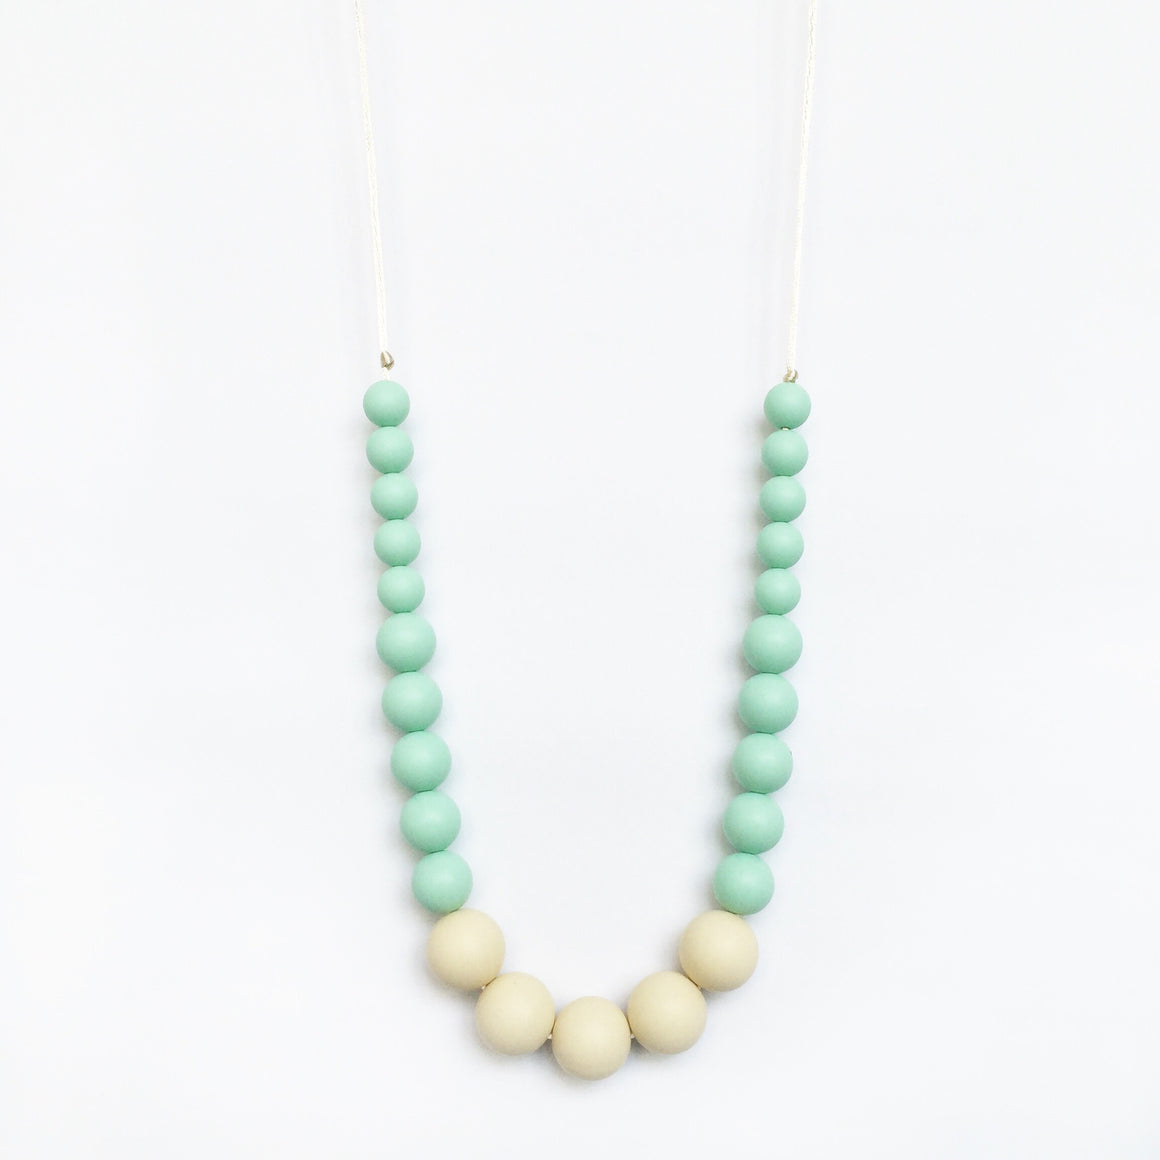 Color Block Silicone Necklace - Mint